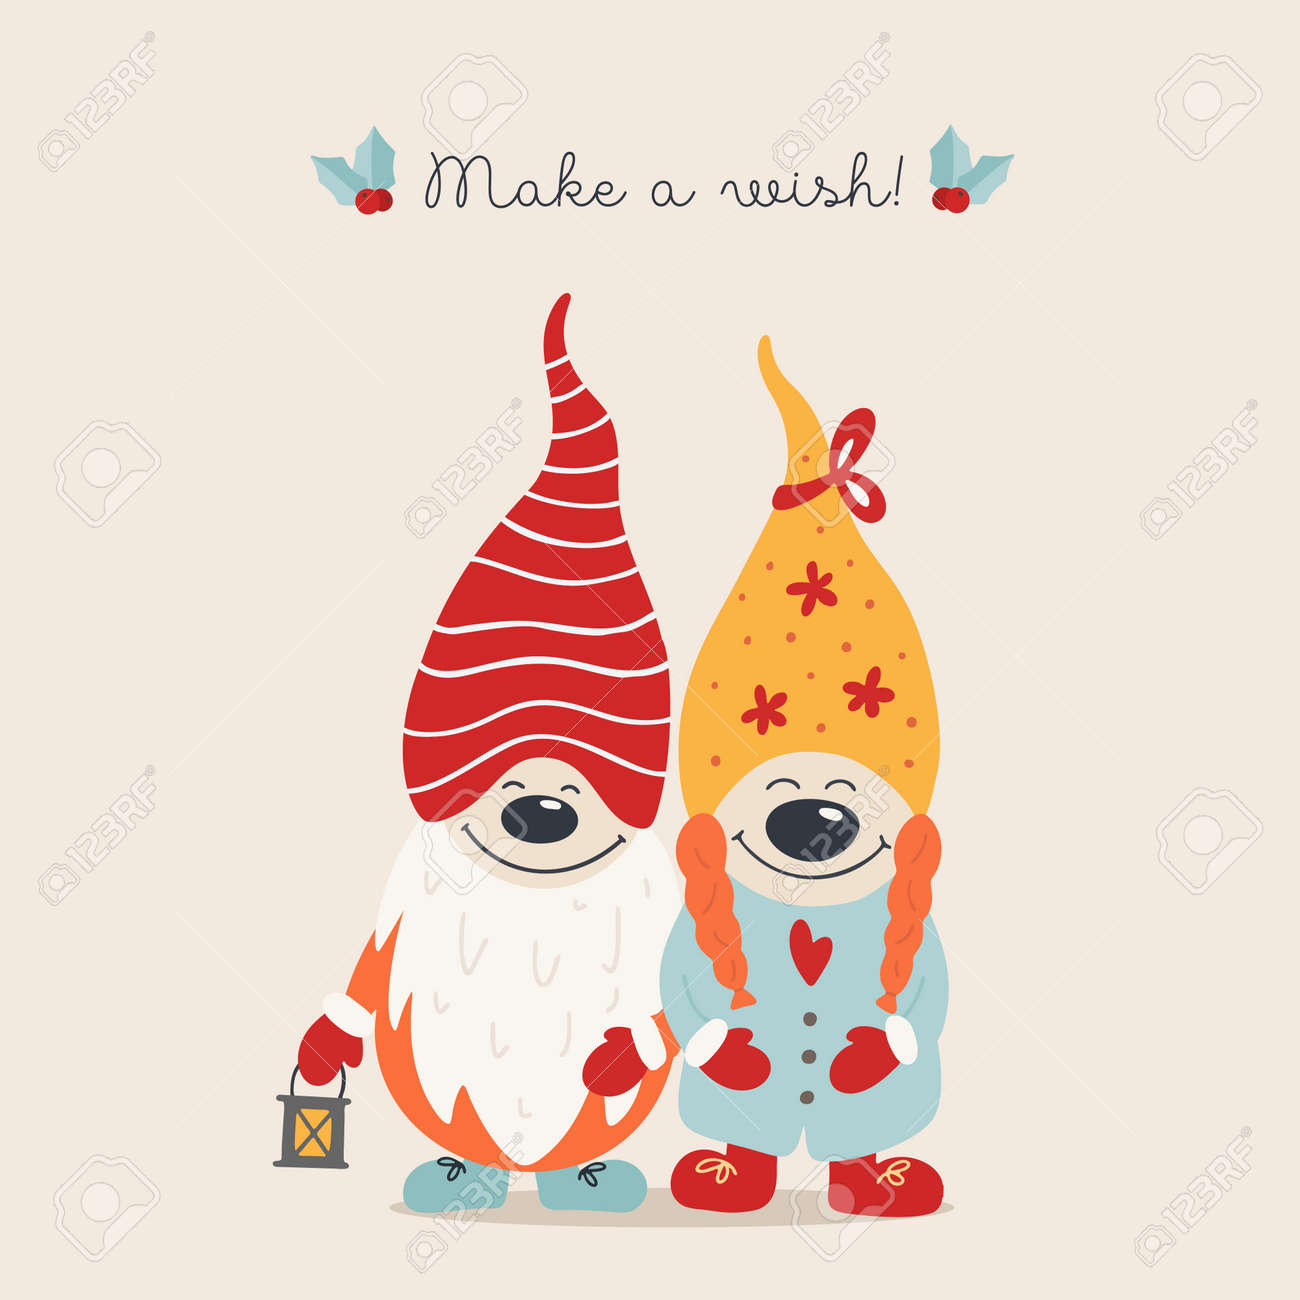 Christmas card with gnomes hugs, hand drawn style. Vector illustration. - 132542537